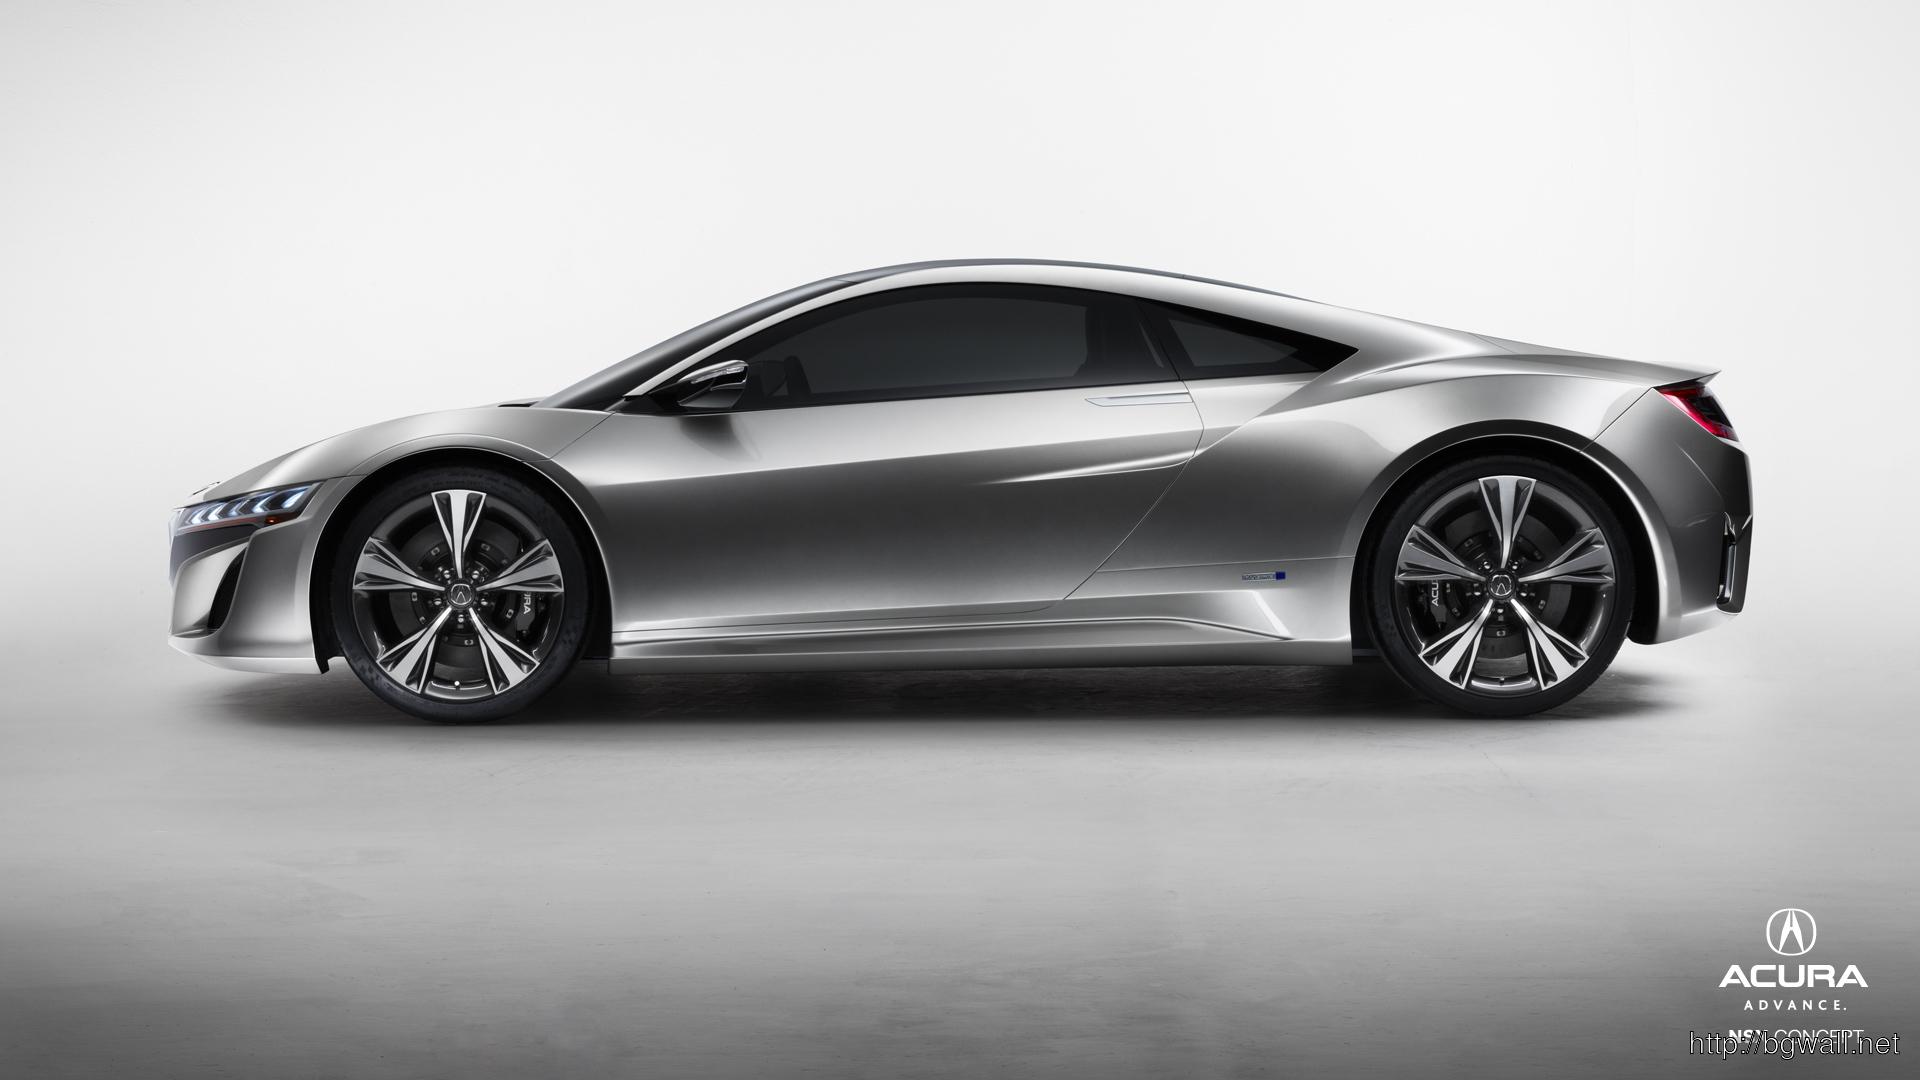 Acura-NSX-2015-Car-Wallpaper